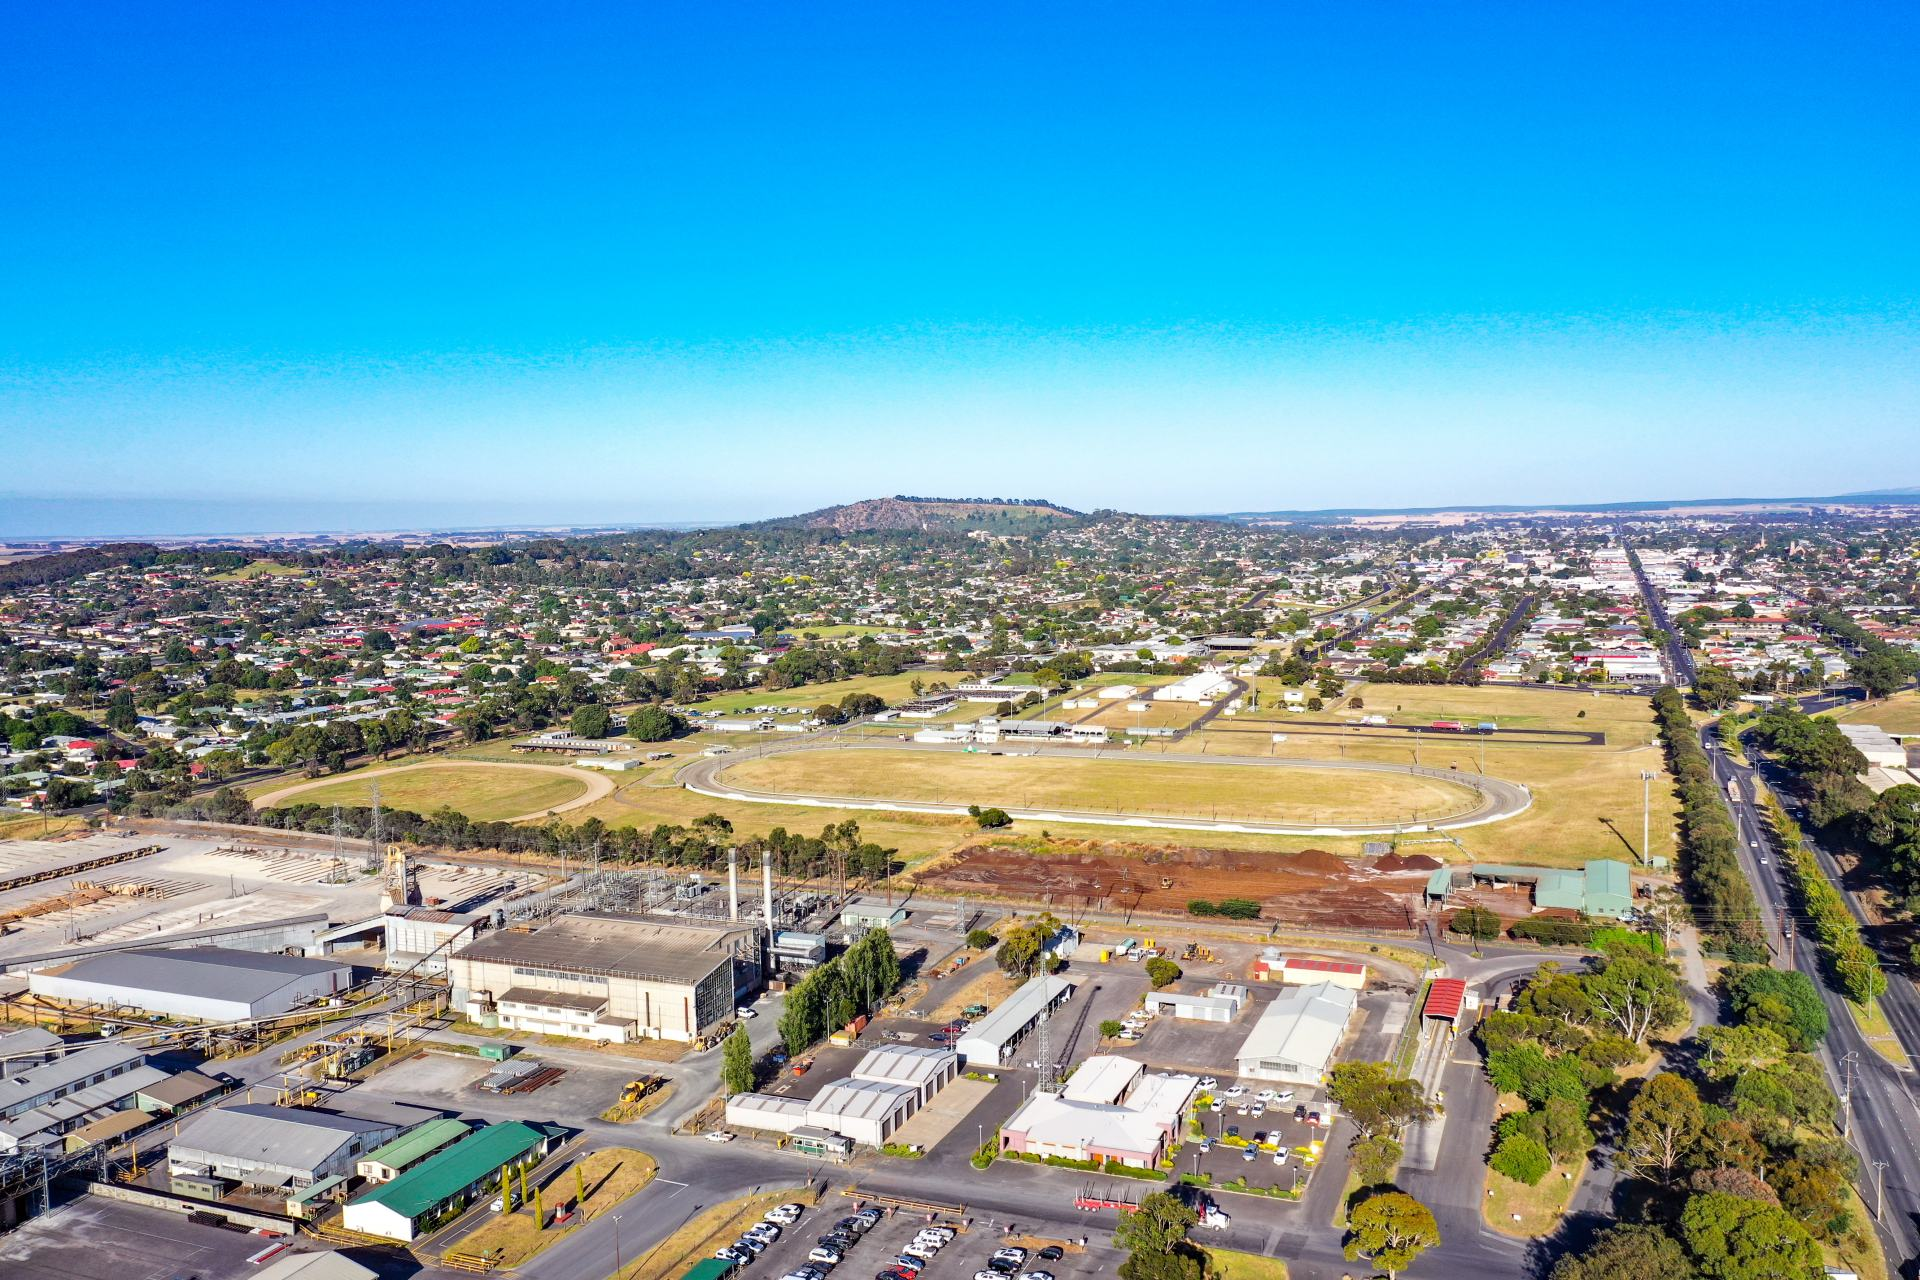 views over mount gambier